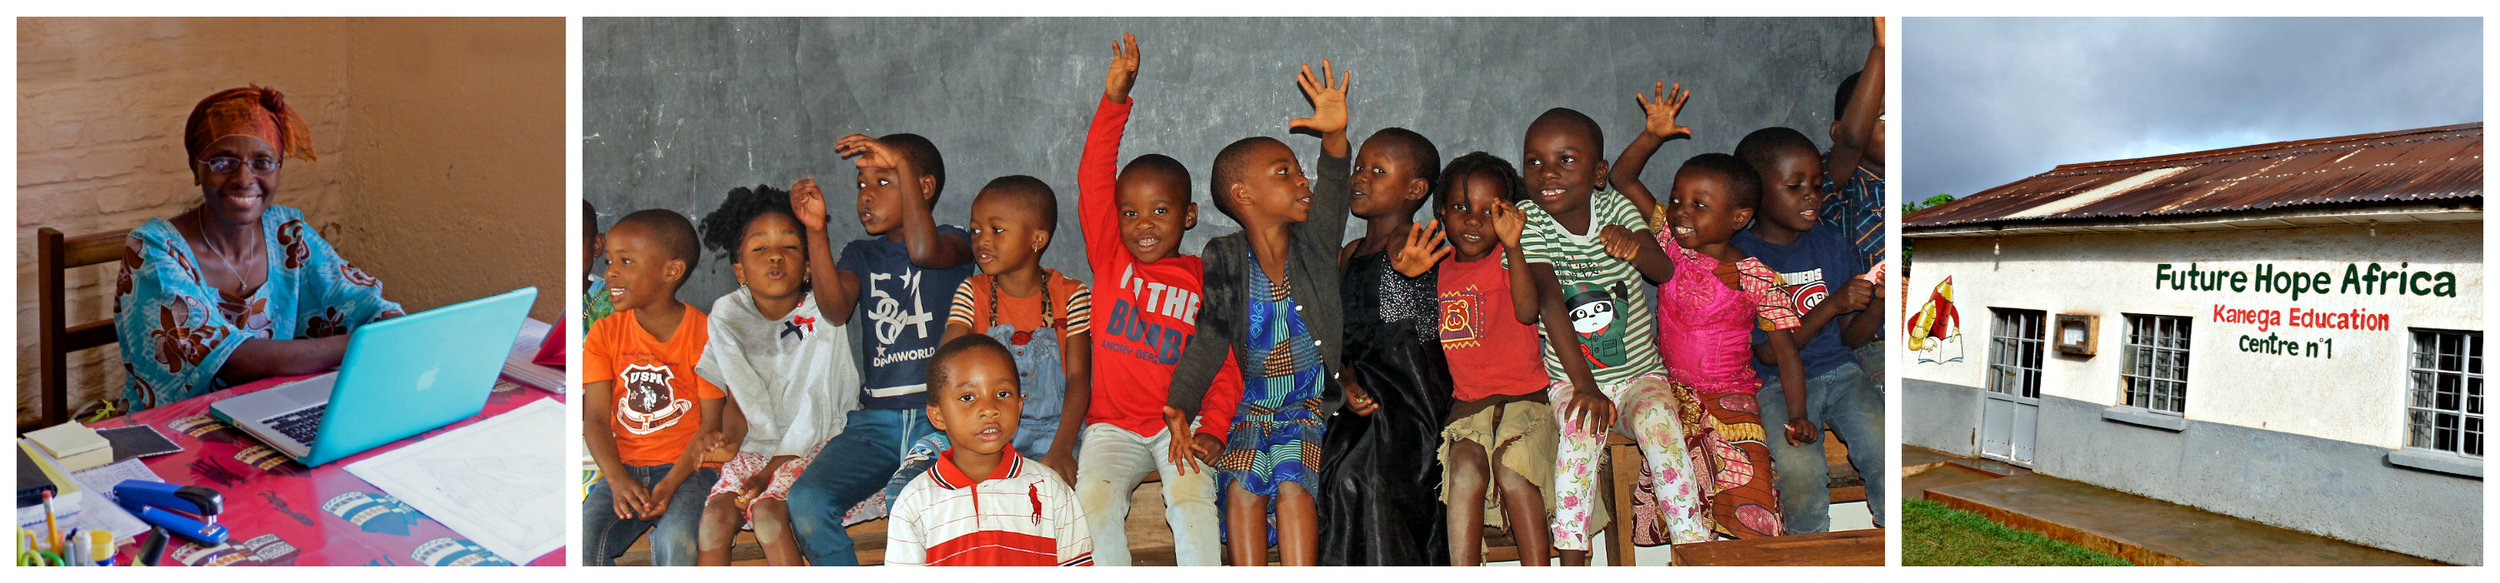 Future Hope Africa is expanding its Kanega Education Center